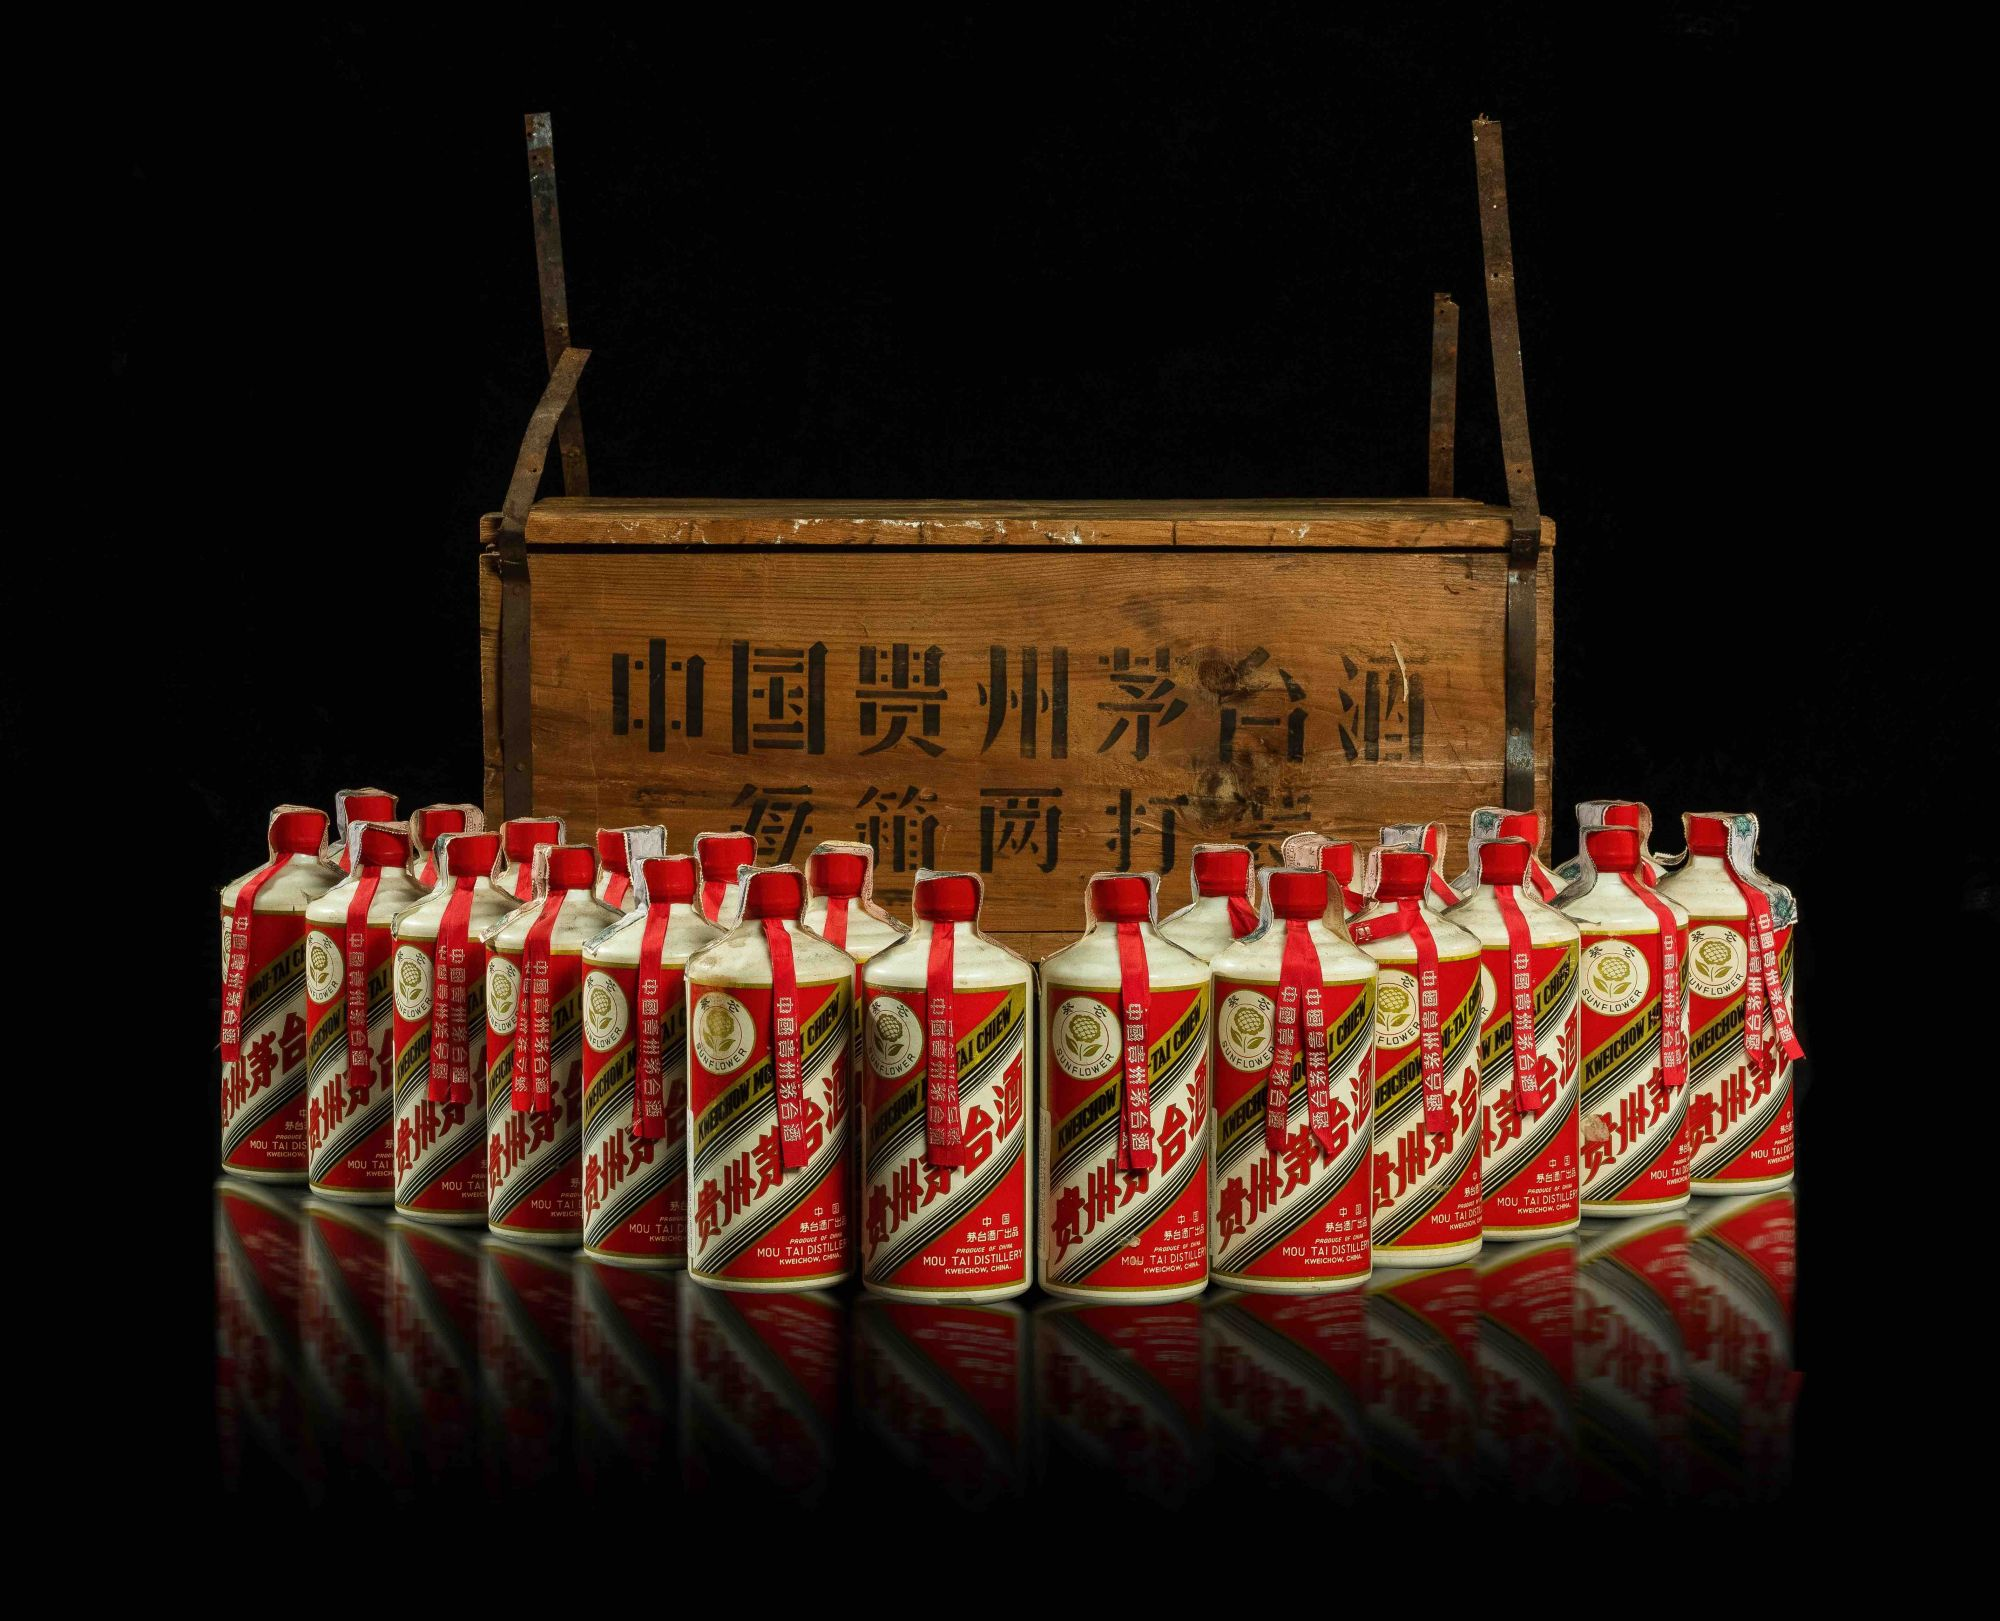 Kweichow Moutai 1974 (Photo: Courtesy of Sotheby's)